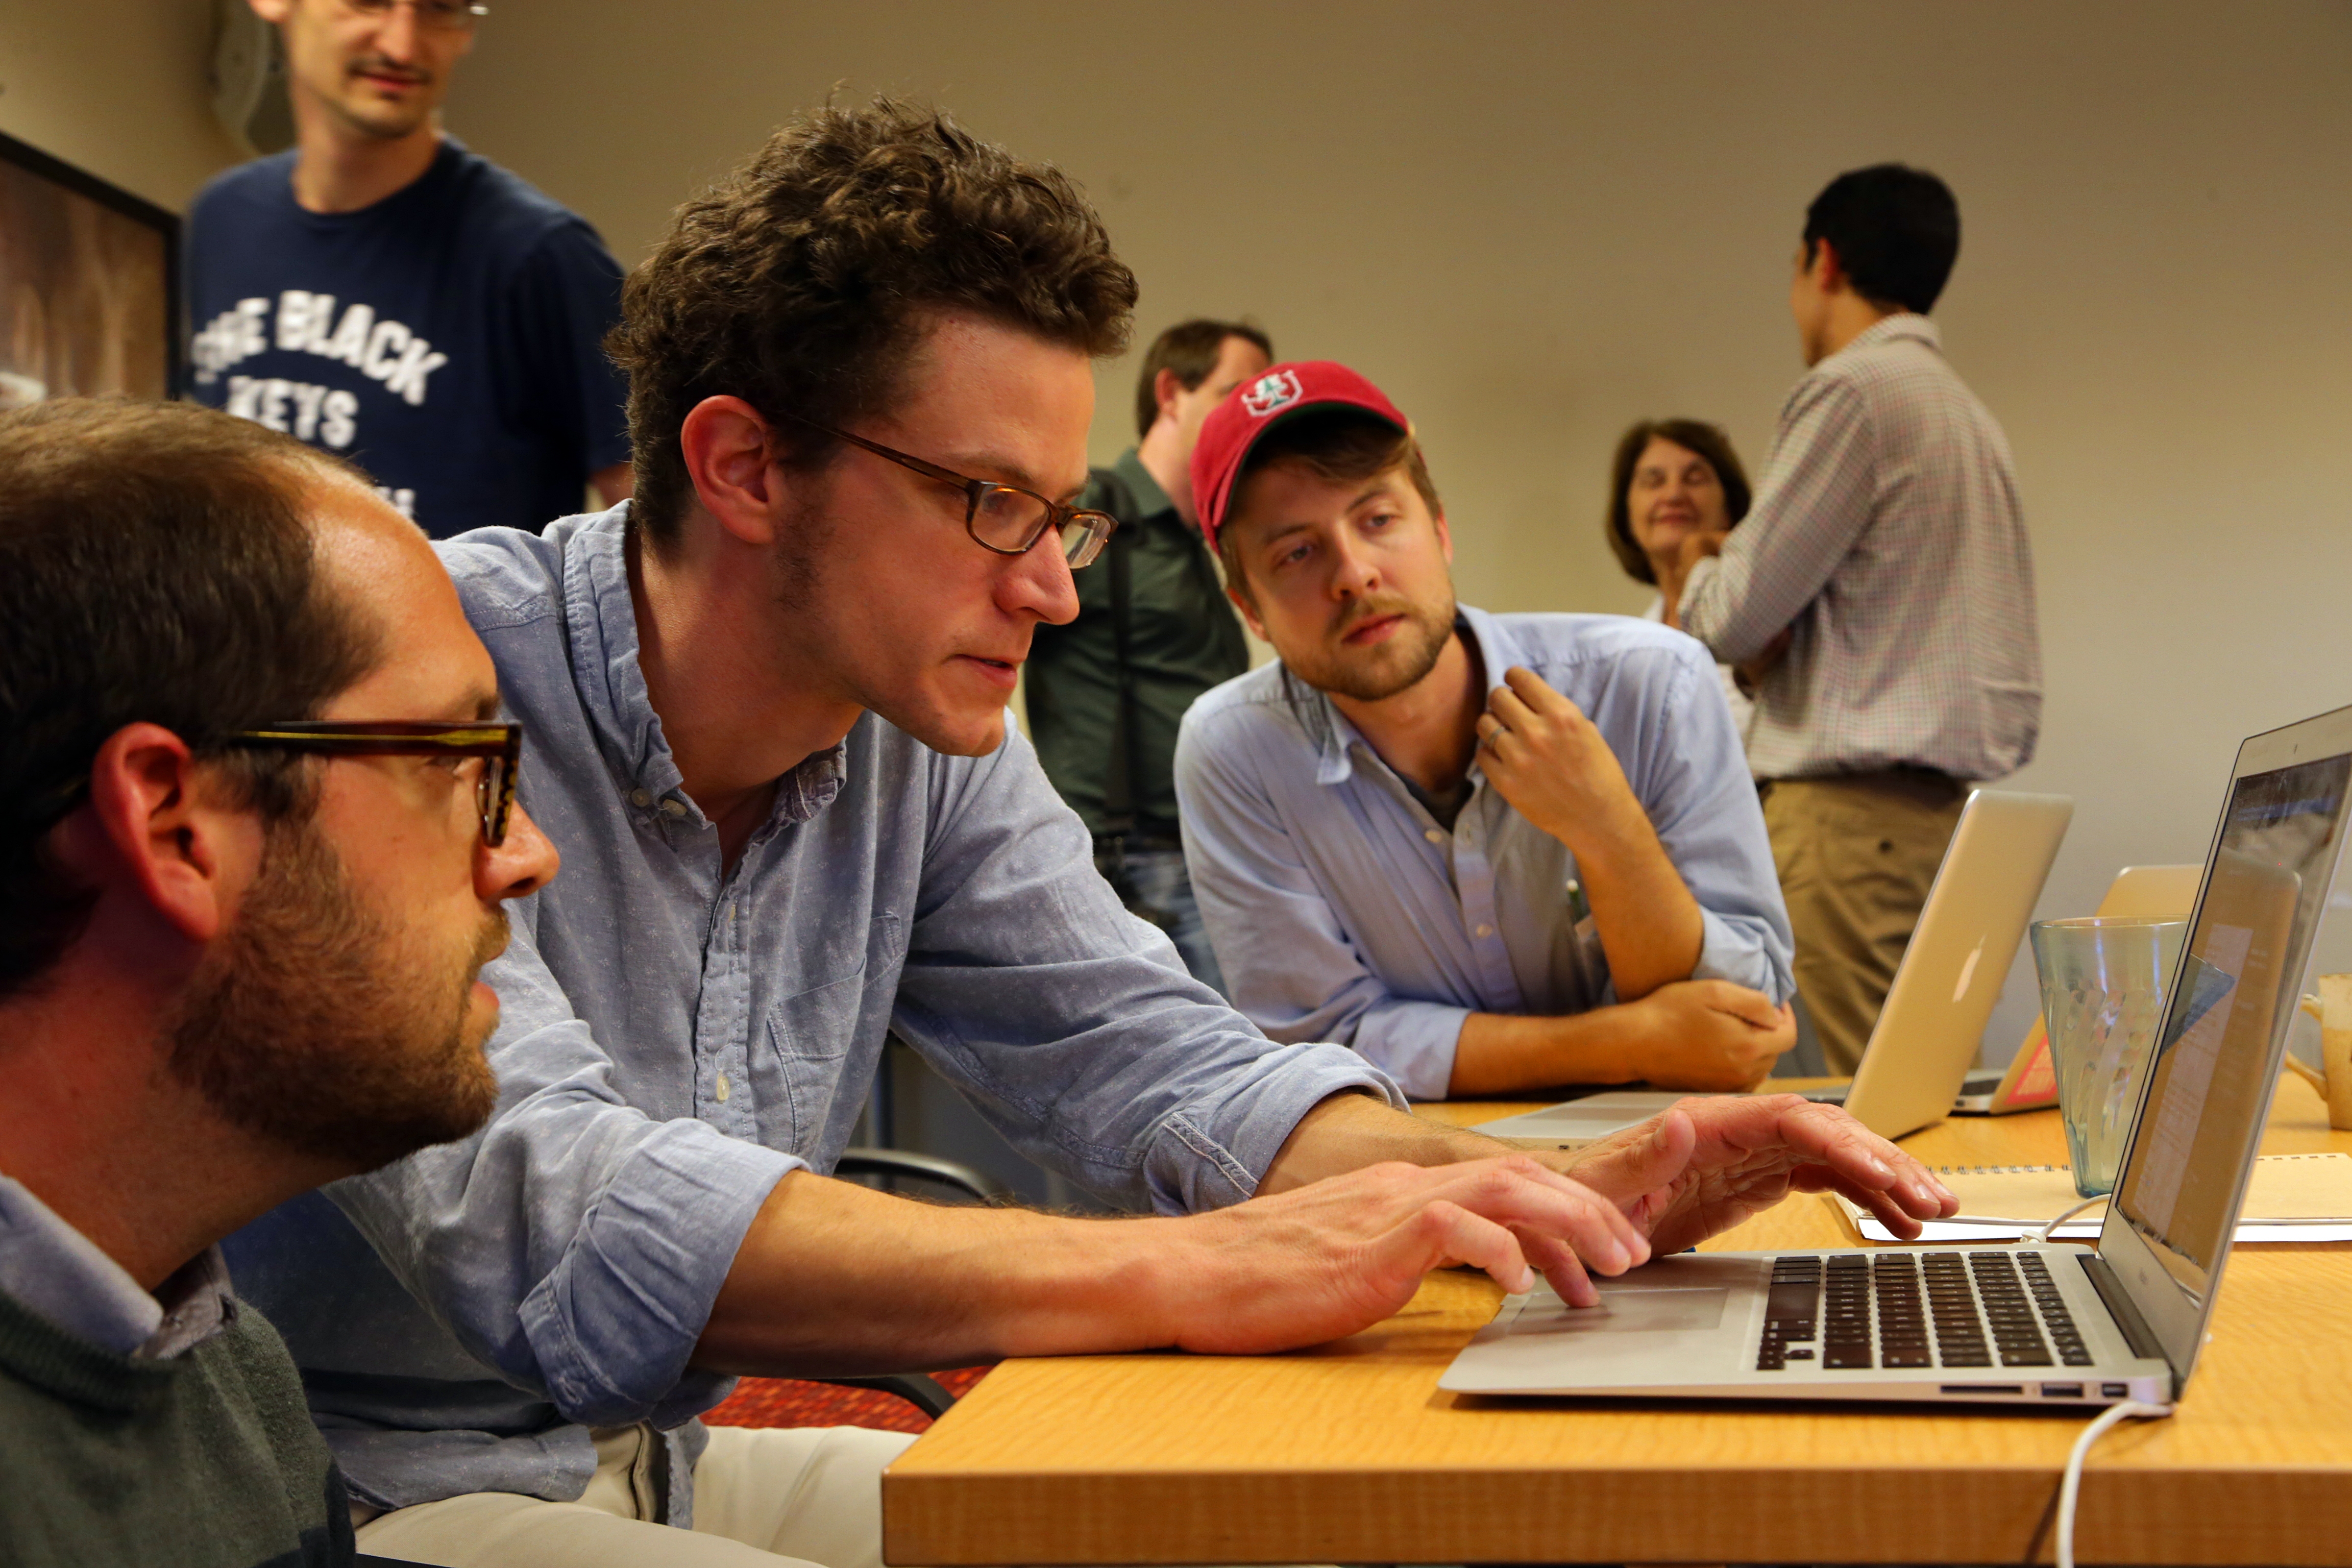 Jeremy Dean, center, shows students how they might use Rapgenius as part of their teaching scheme during a workshop on teaching humanities in the digital age at Stanford University in Palo Alto, Calif.